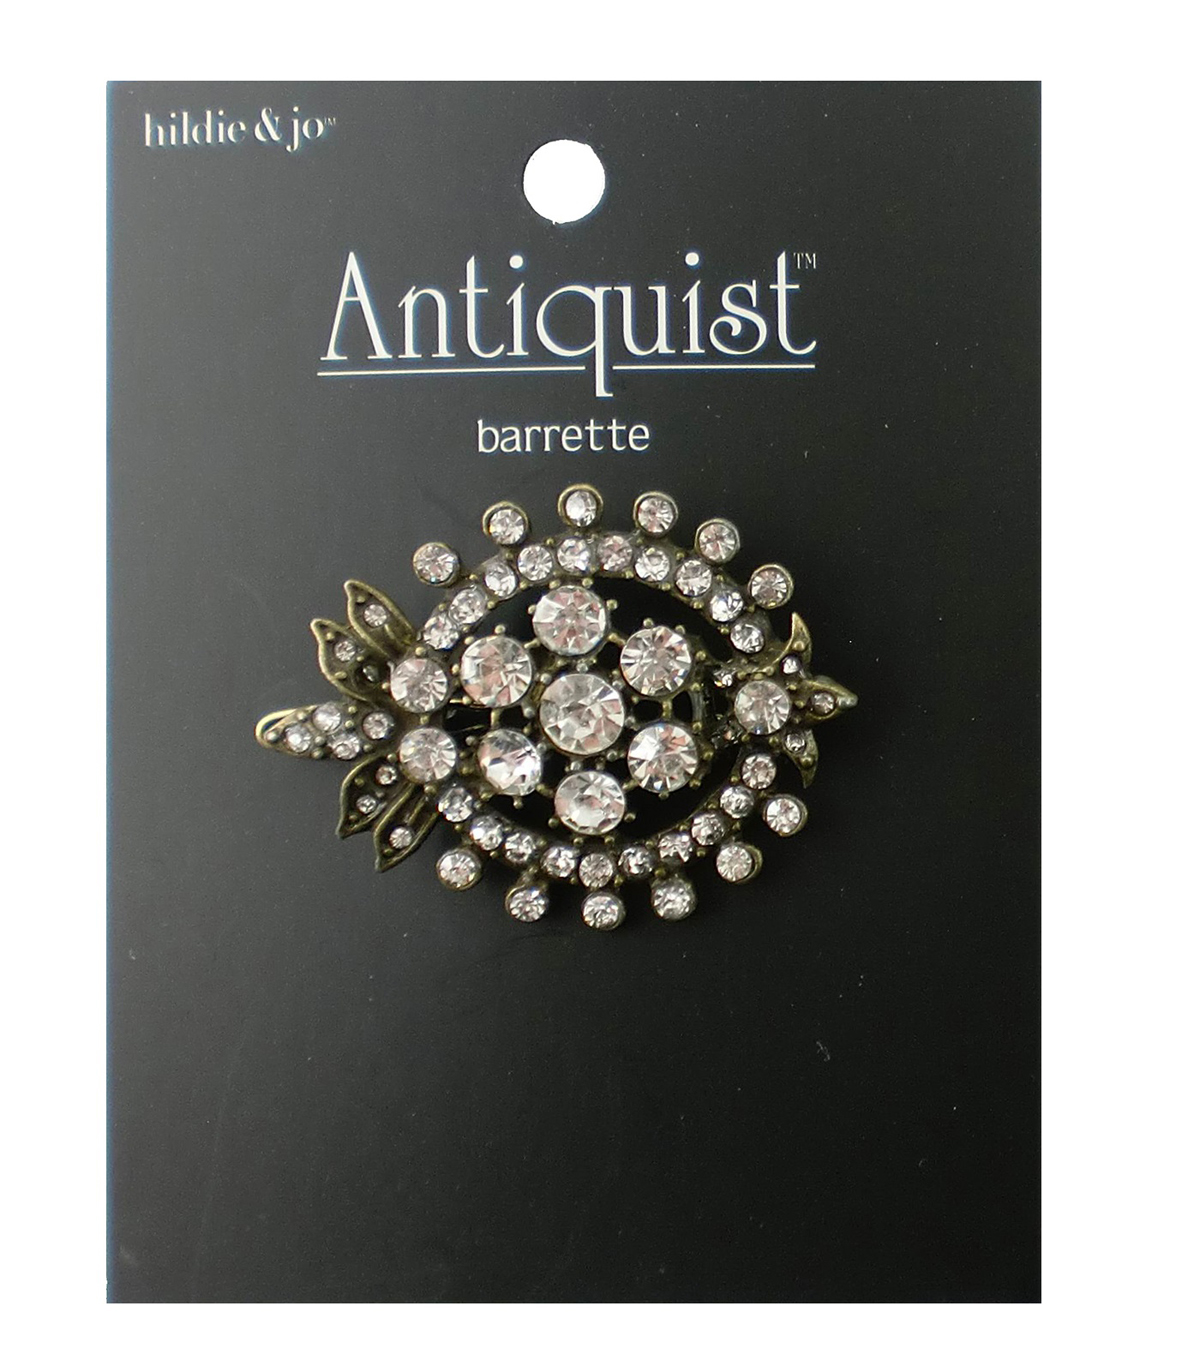 hildie & jo™ Antiquist Antique Gold Barrette-Clear Rhinestones